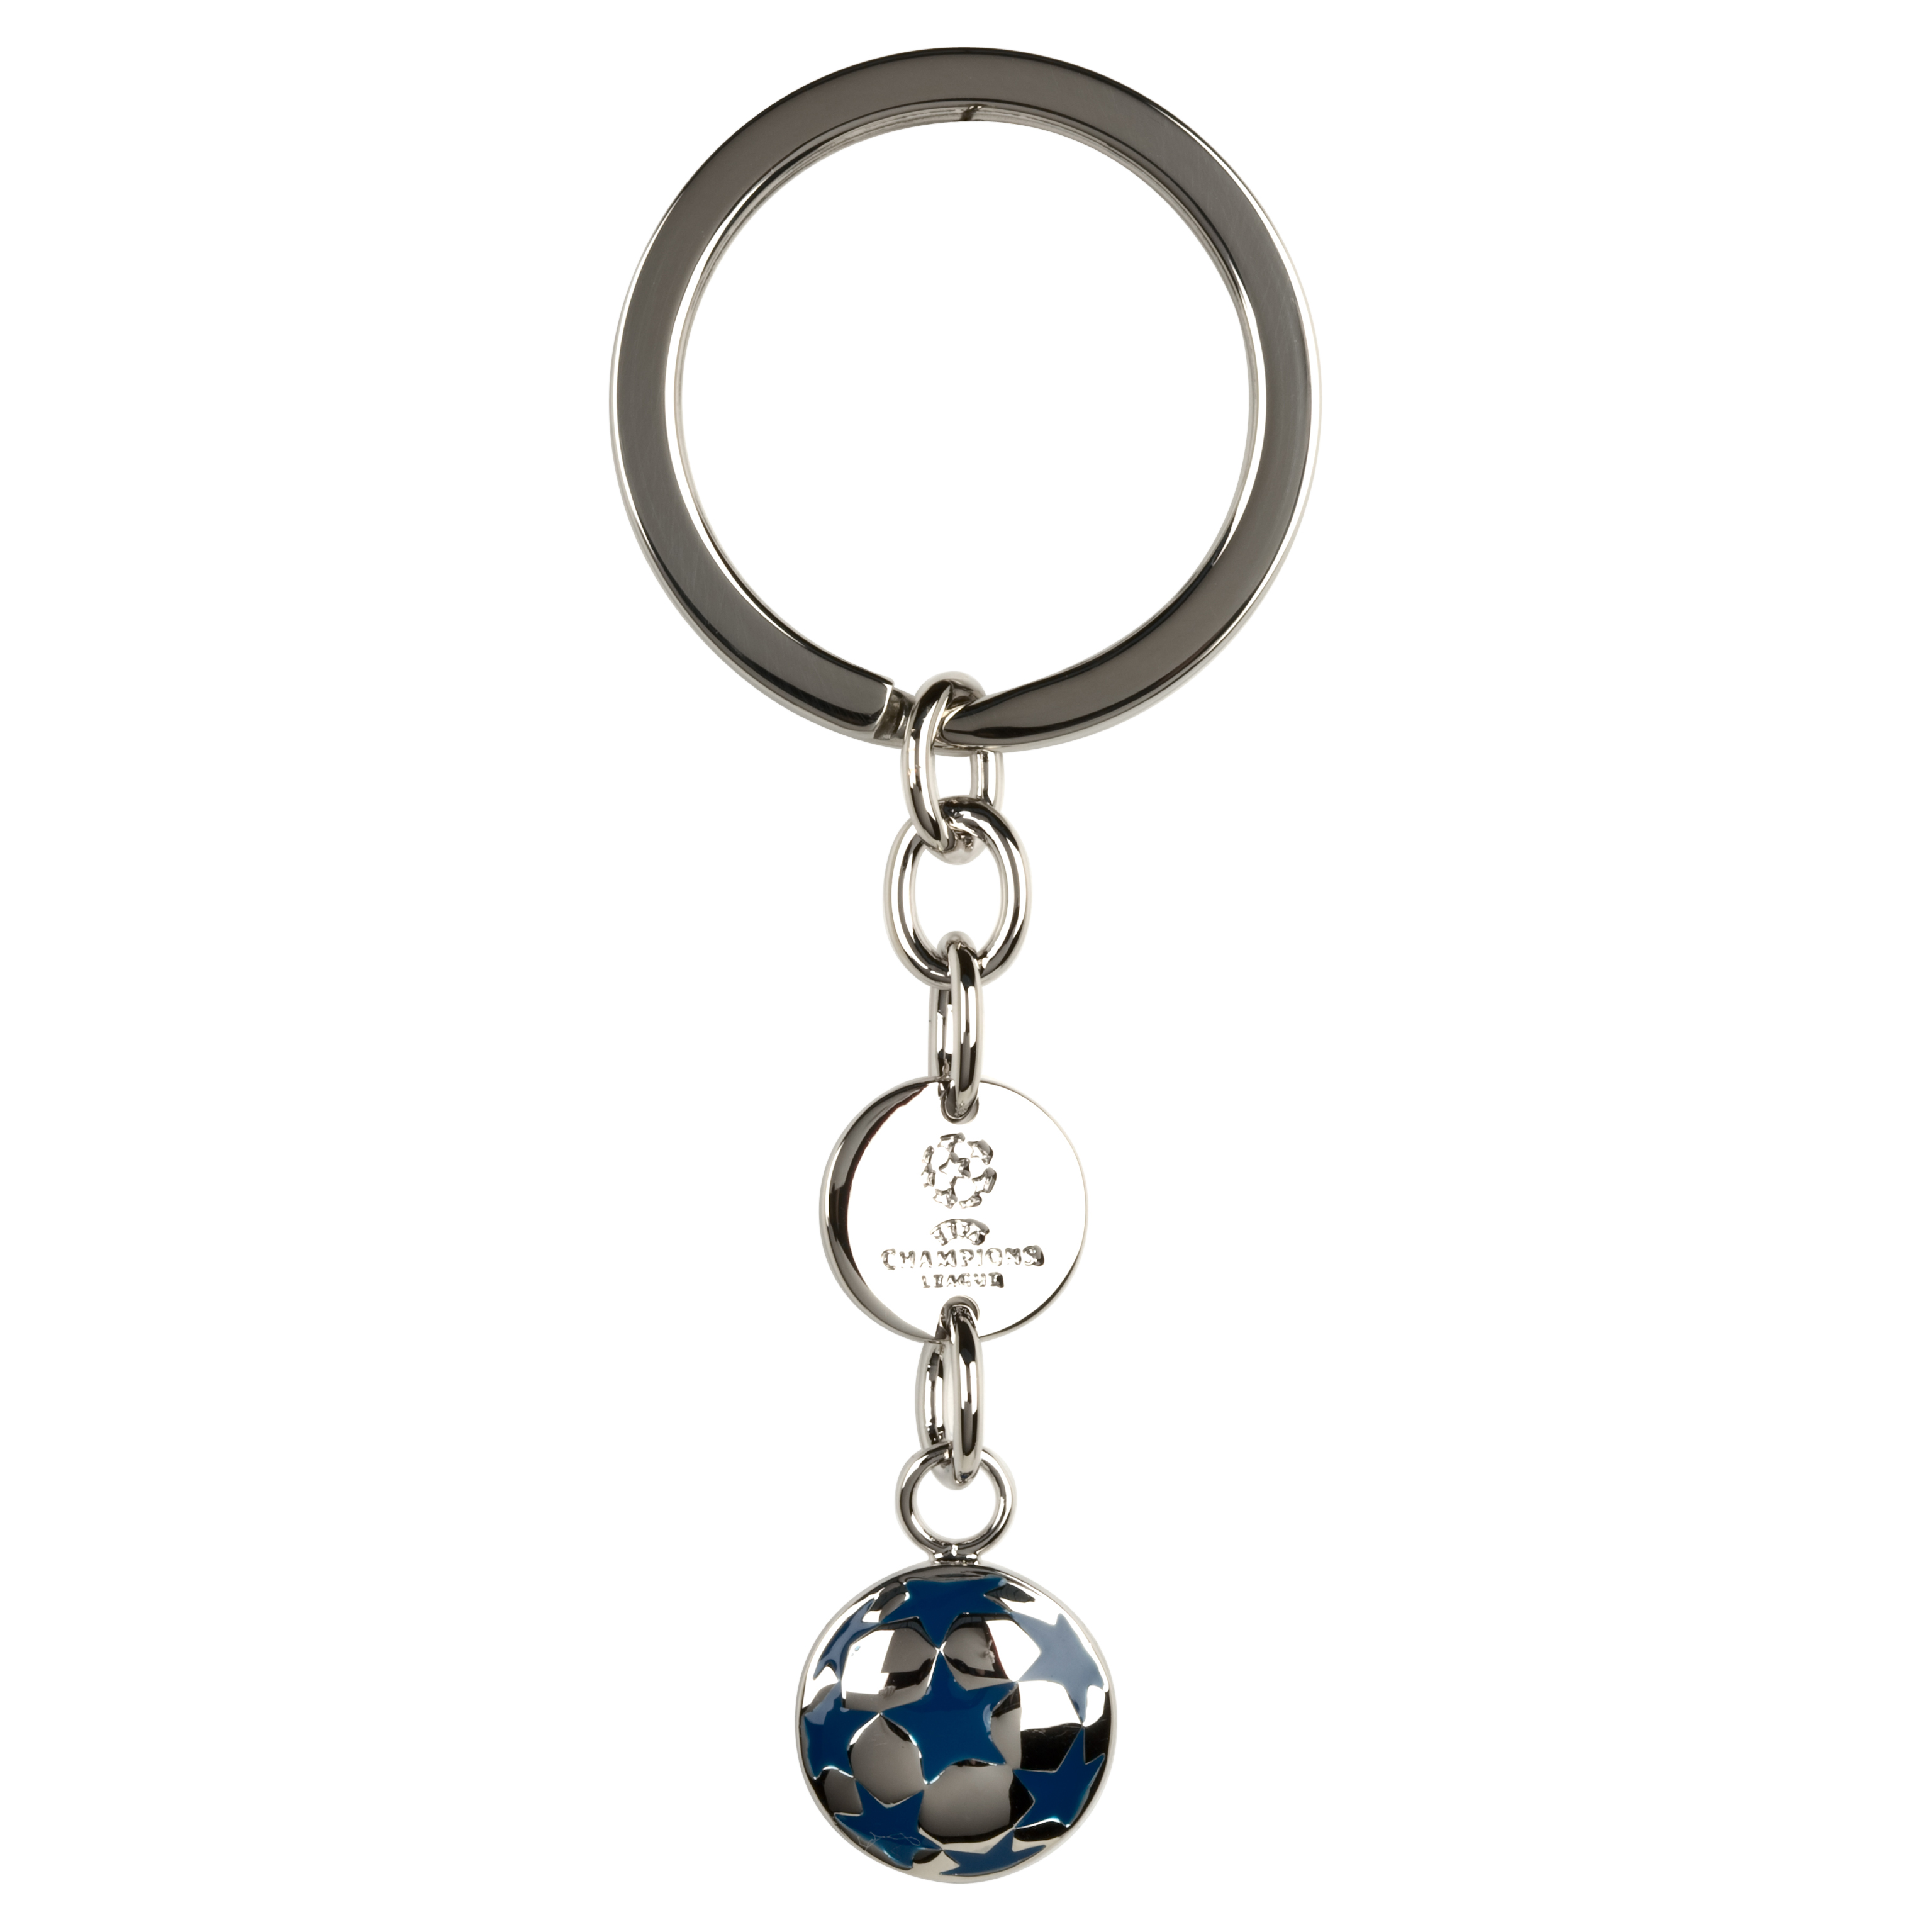 UEFA Champions League Balon Key Ring